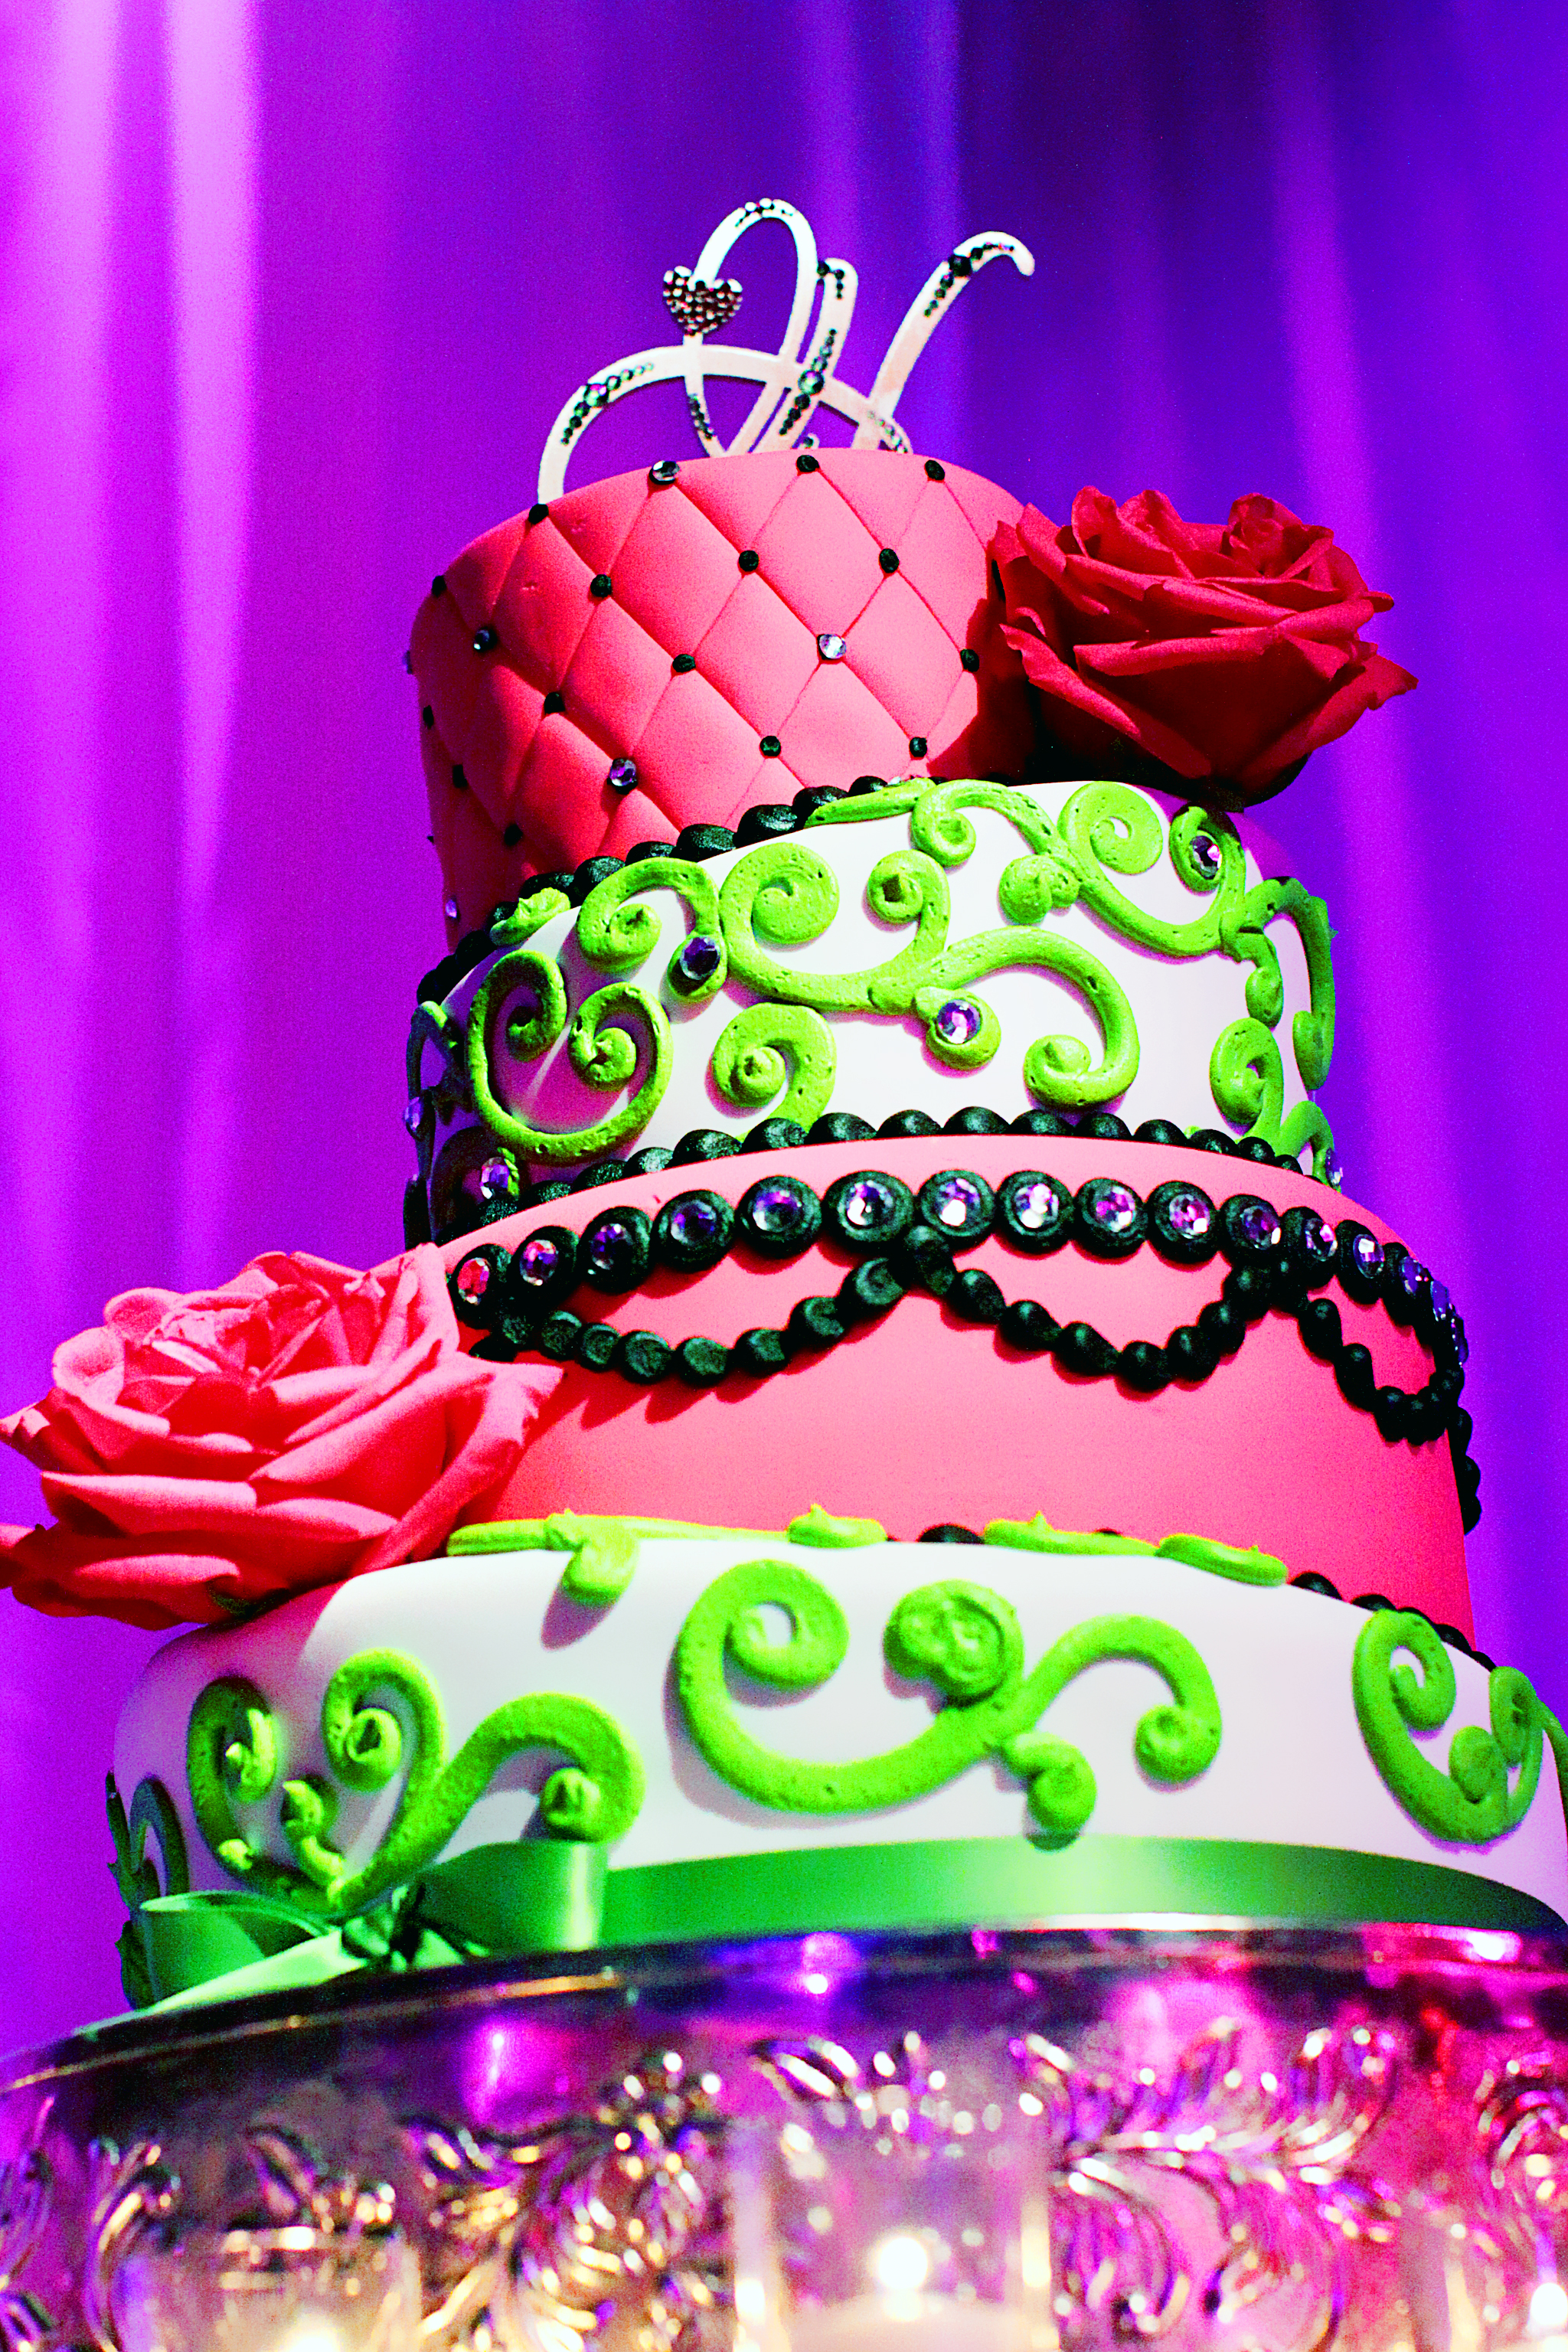 Pink and Green wedding cake